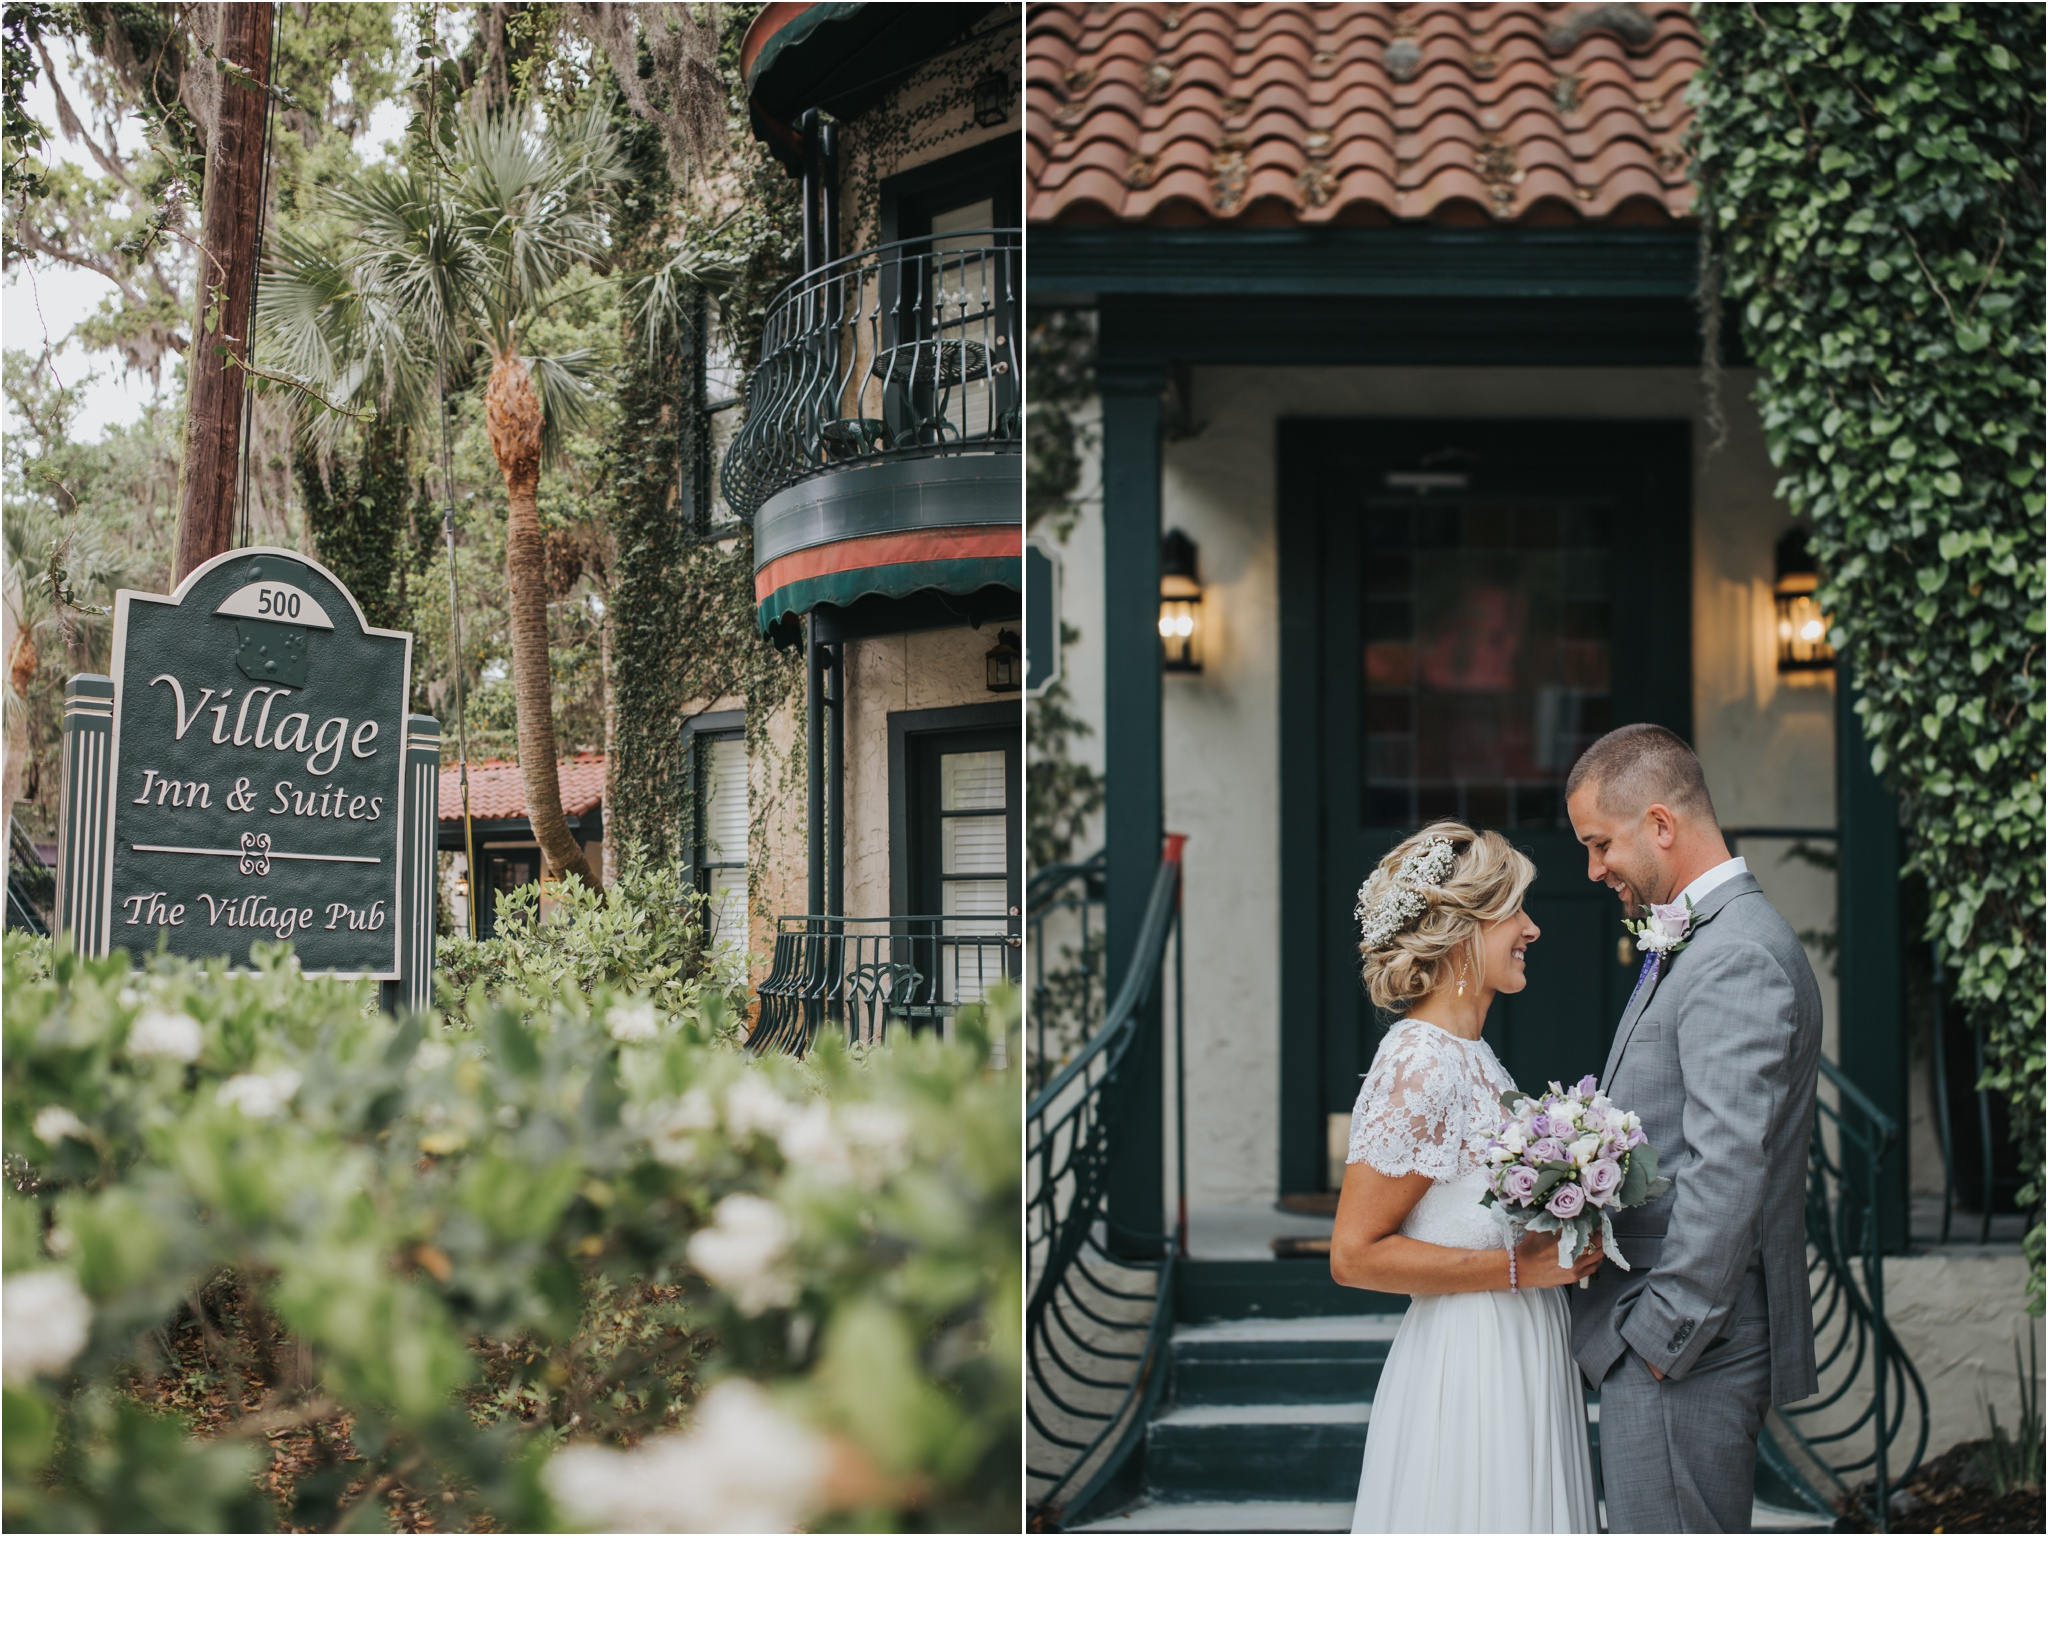 Rainey_Gregg_Photography_St._Simons_Island_Georgia_California_Wedding_Portrait_Photography_1525.jpg